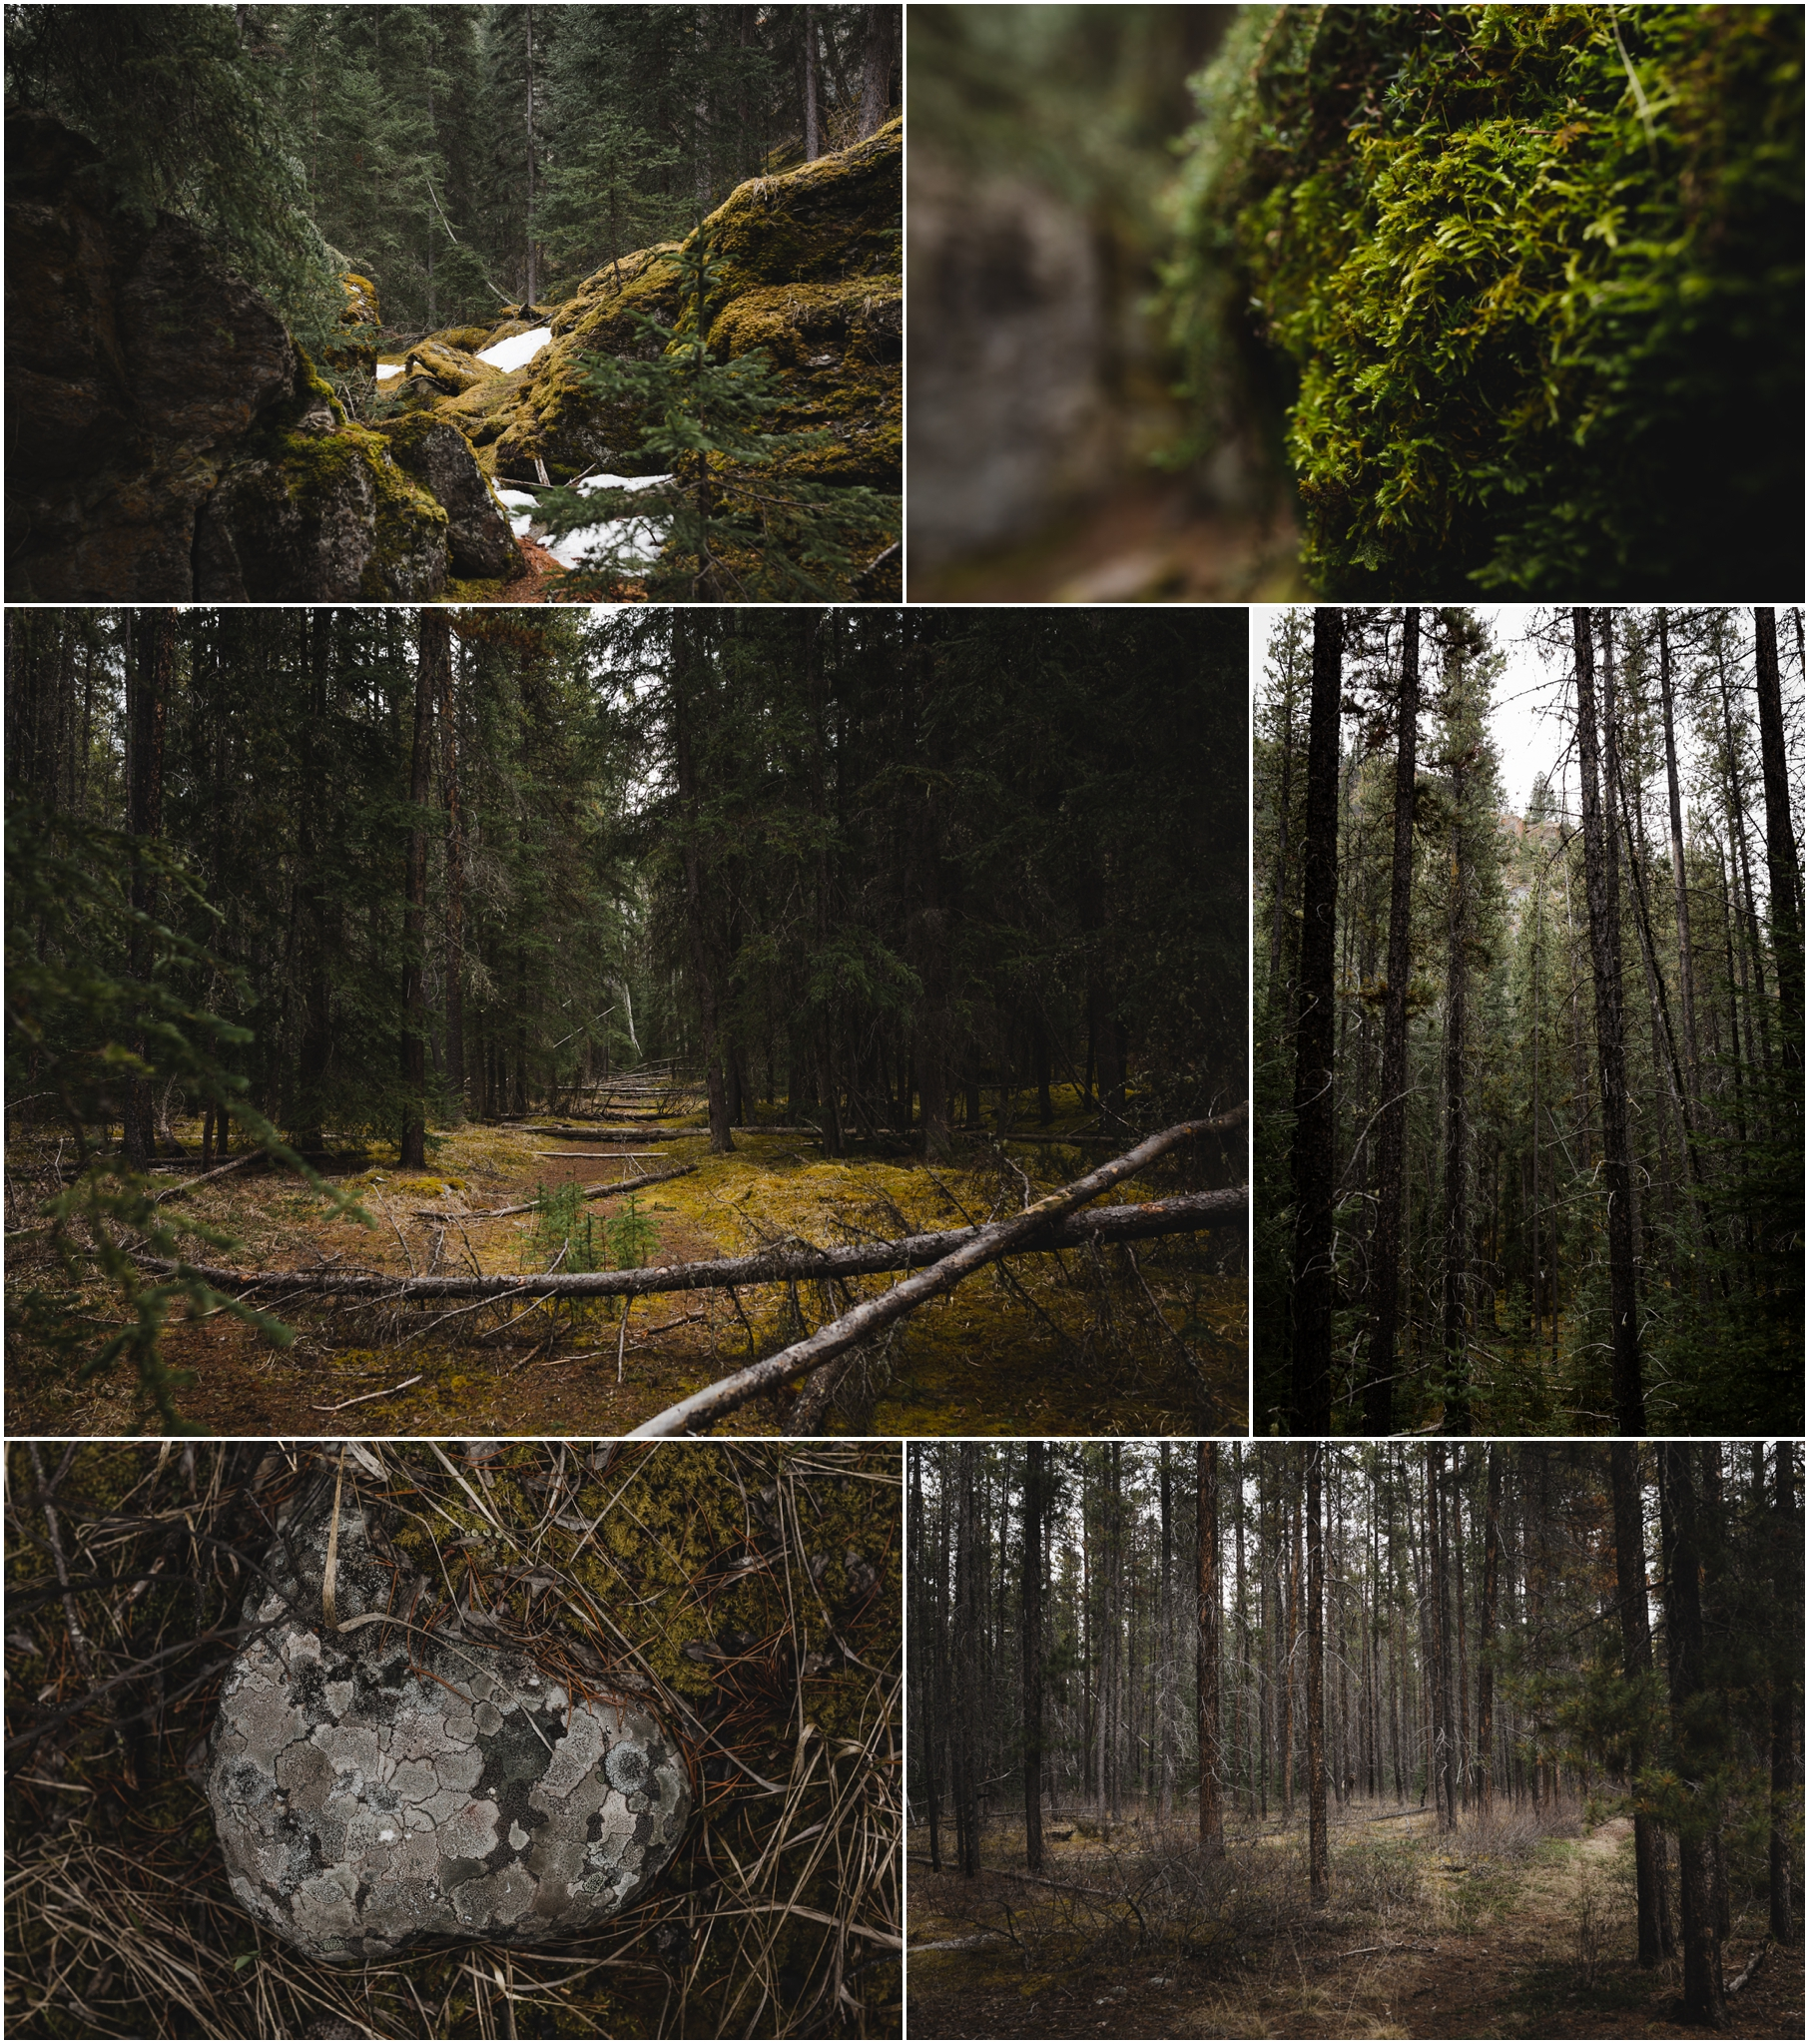 Jasper National Park - Hiking Trails - Old Fort Point - Pine Trees - Moss - Treelines Photography